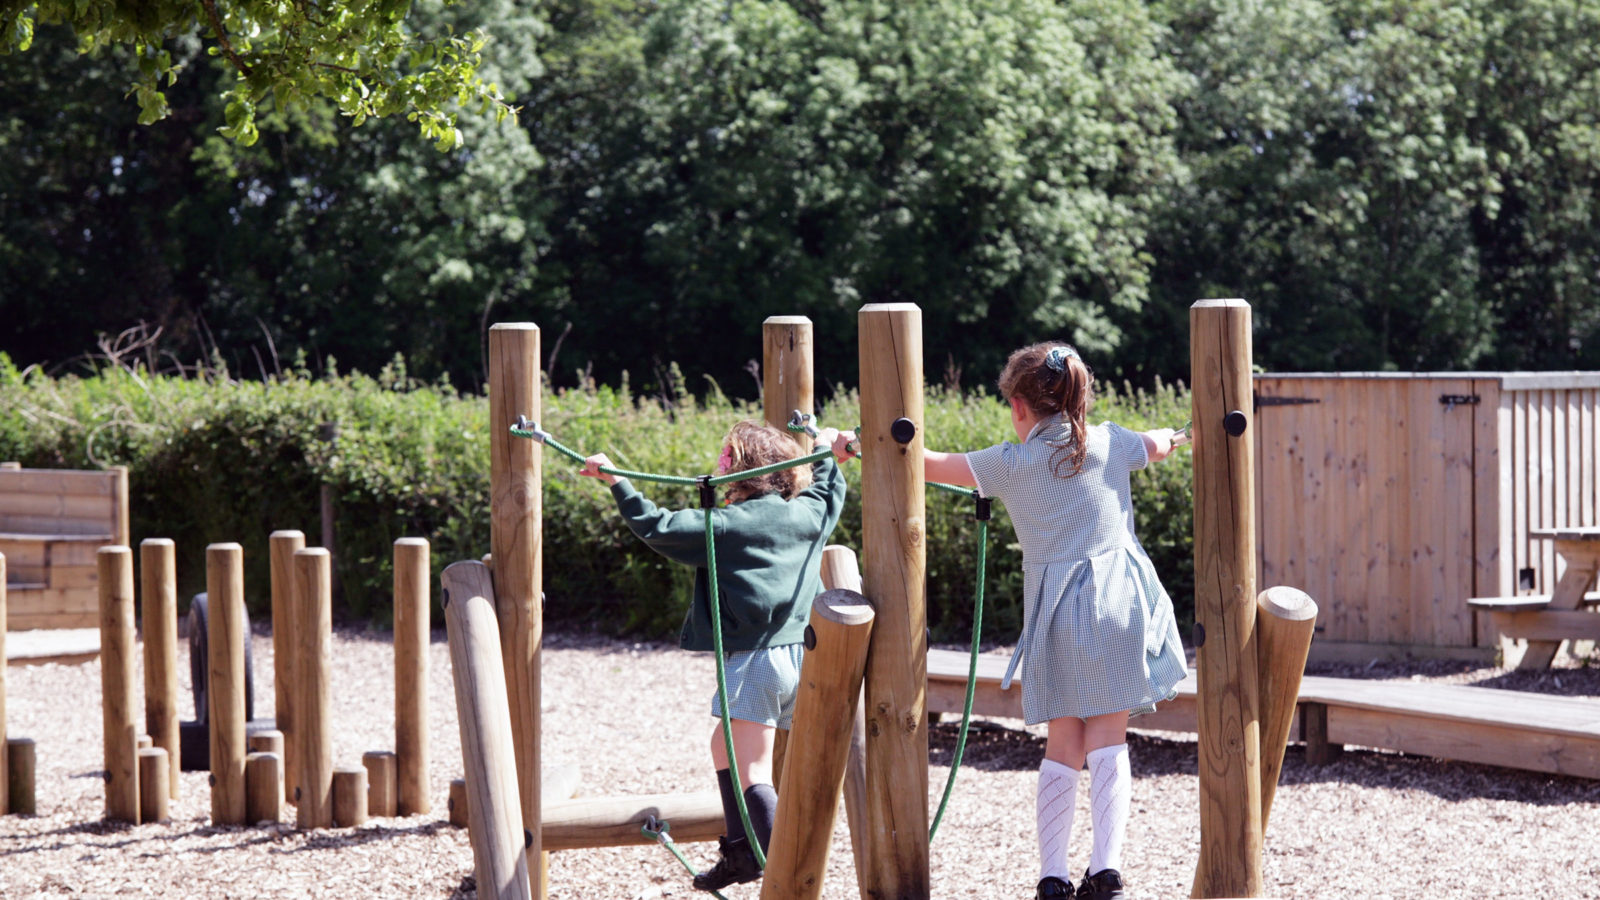 Children playing on rope bridge